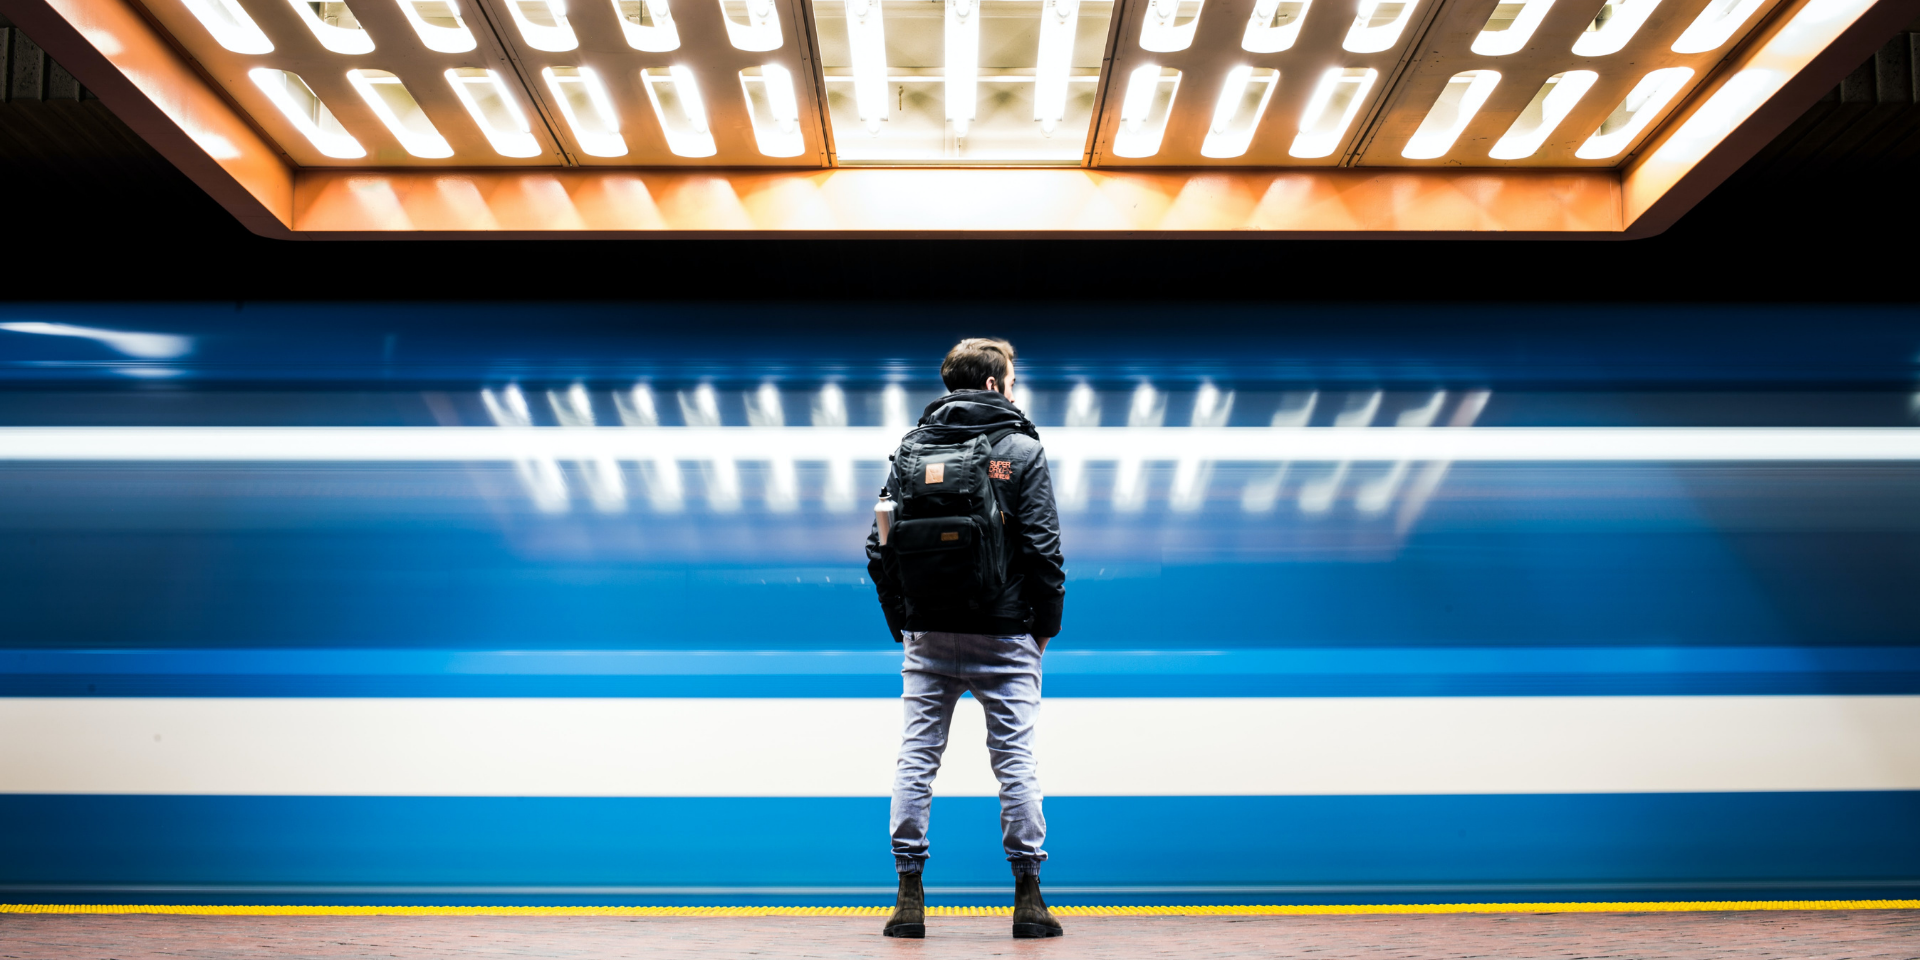 Nordic API Gateway provides the rails for a more personalised, enjoyable journey.